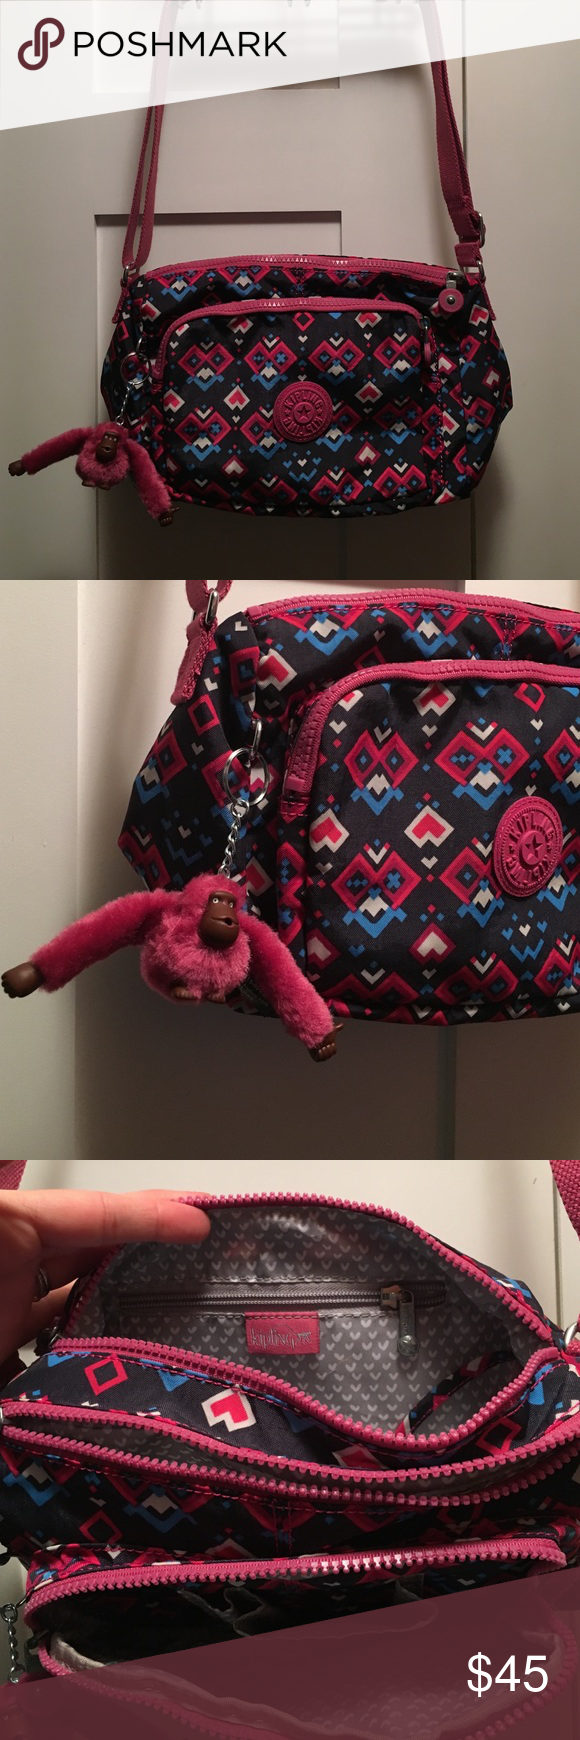 Kipling Crossbody Purse This is a never used, new without tags Kipling Purse. The strap is adjustable and there are tons of pockets and compartments. Kipling Bags Crossbody Bags